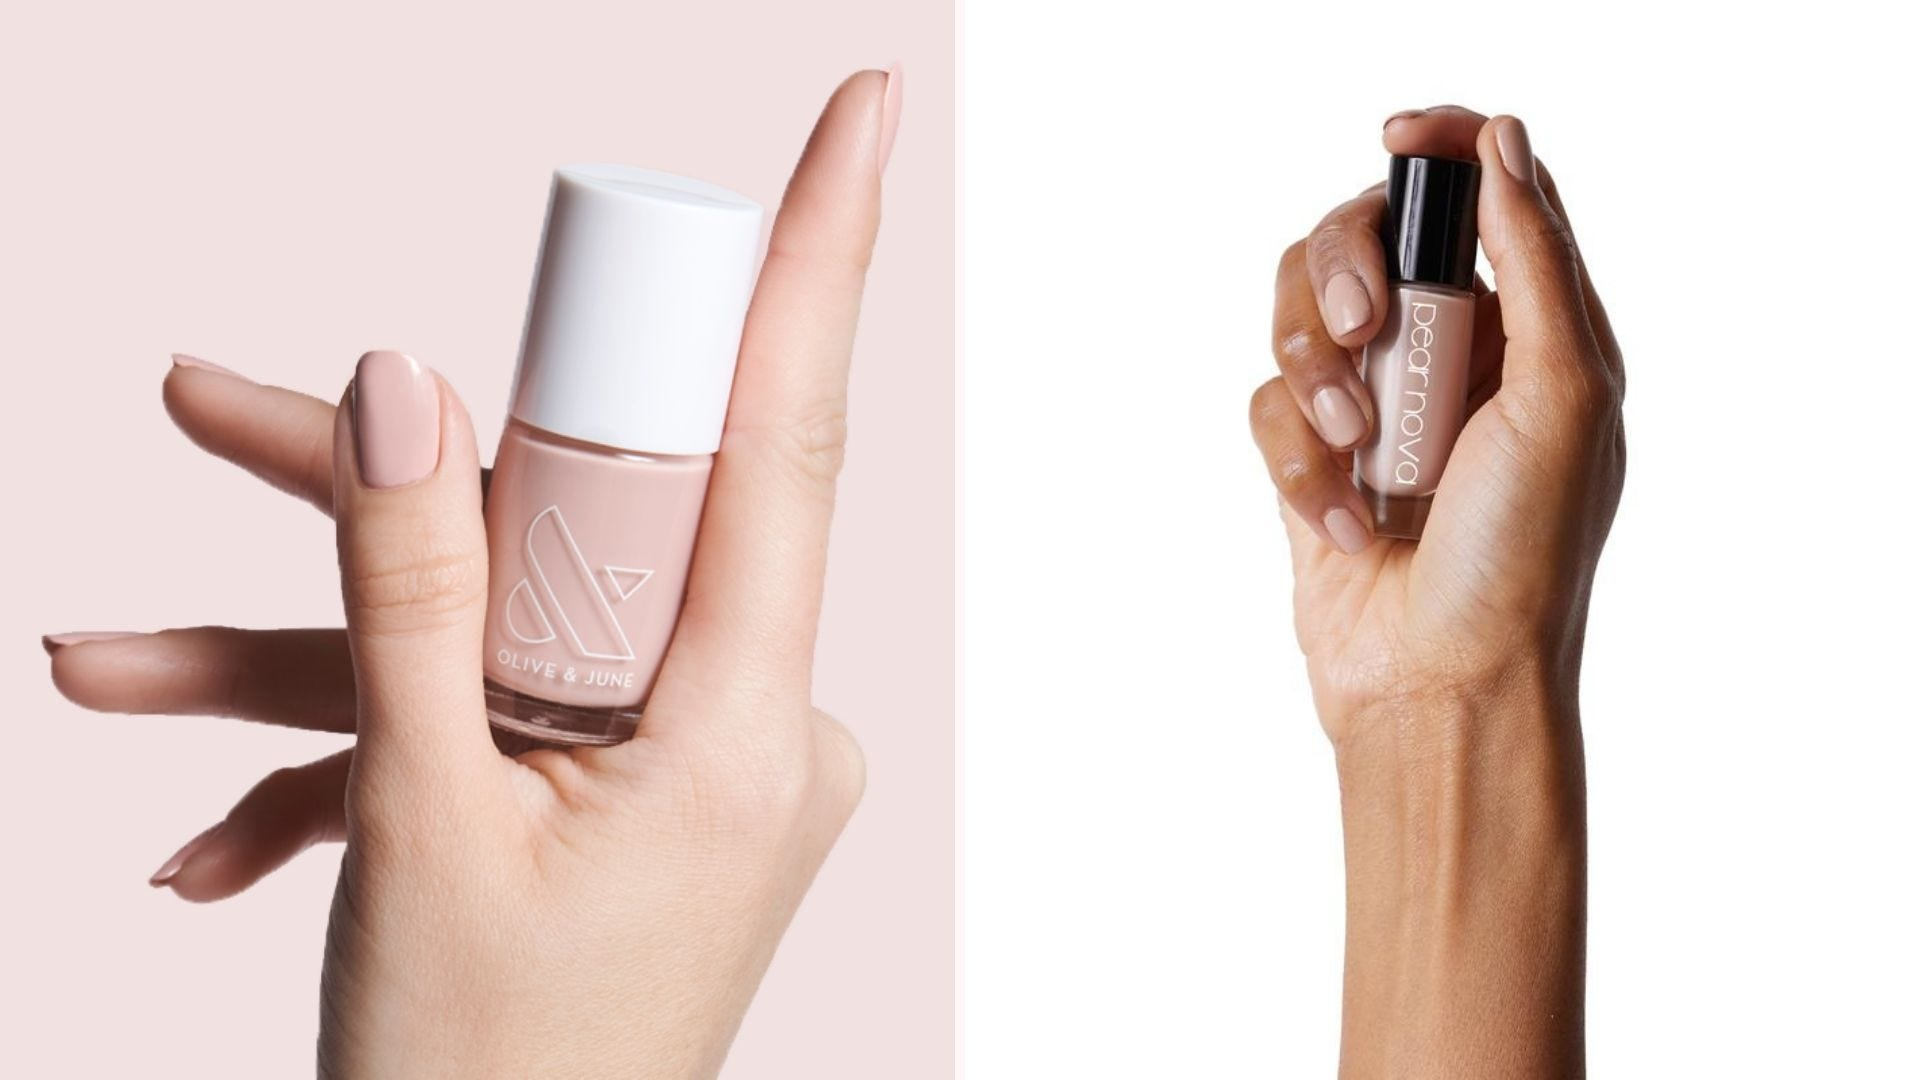 Two hands holding bottles of neutral-pink nail polish